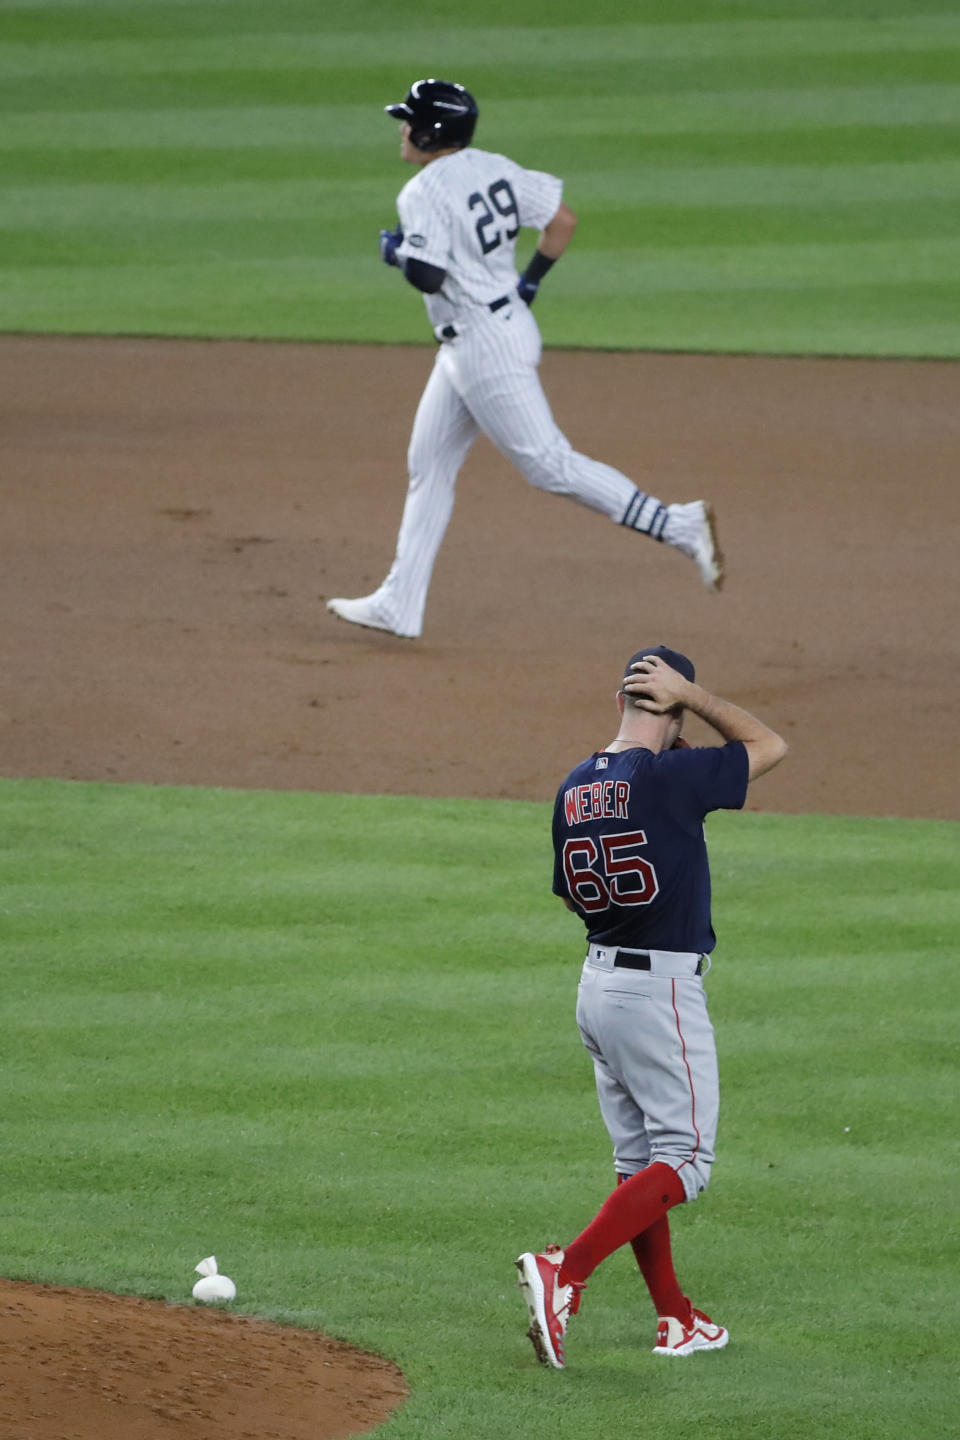 Boston Red Sox pitcher Ryan Weber, right, watches as New York Yankees' Gio Urshela, top, rounds the bases after hitting a home run during the fourth inning of a baseball game at Yankee Stadium, Friday, July 31, 2020, in New York. (AP Photo/Seth Wenig)